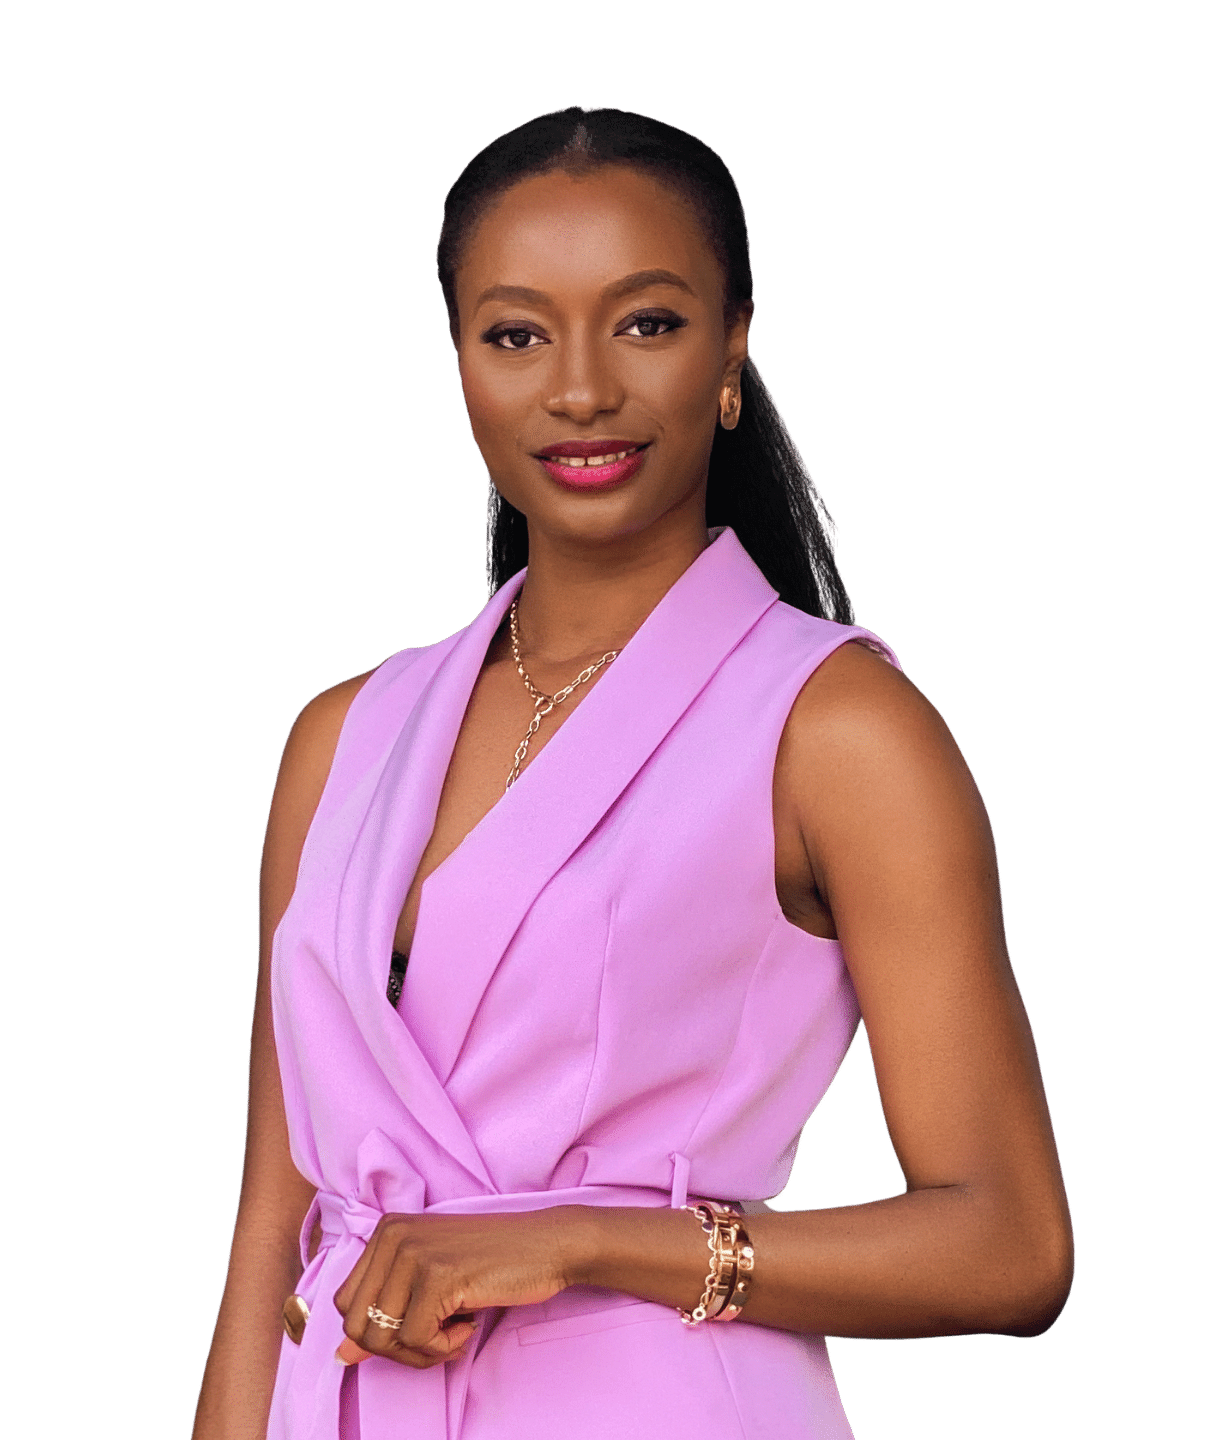 Chioma Brown